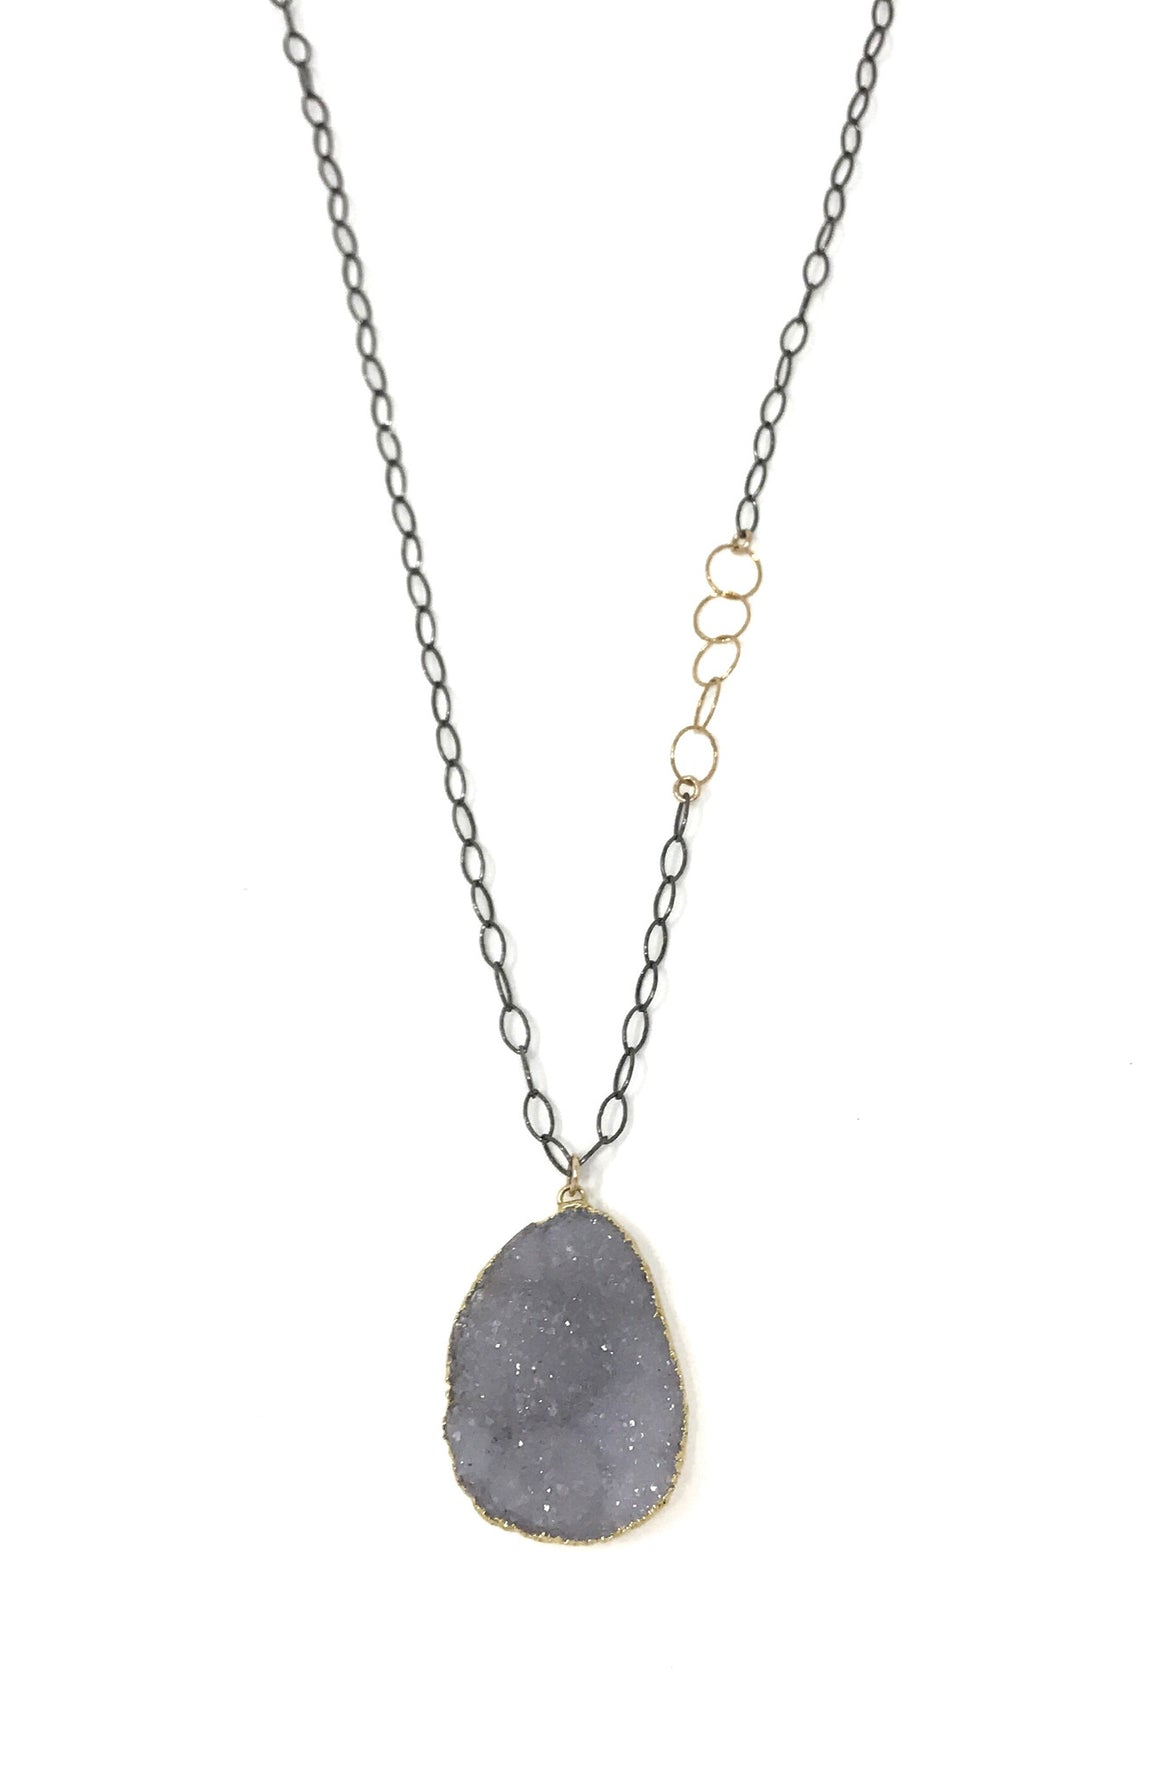 Metta Necklace in Gunmetal and Gold